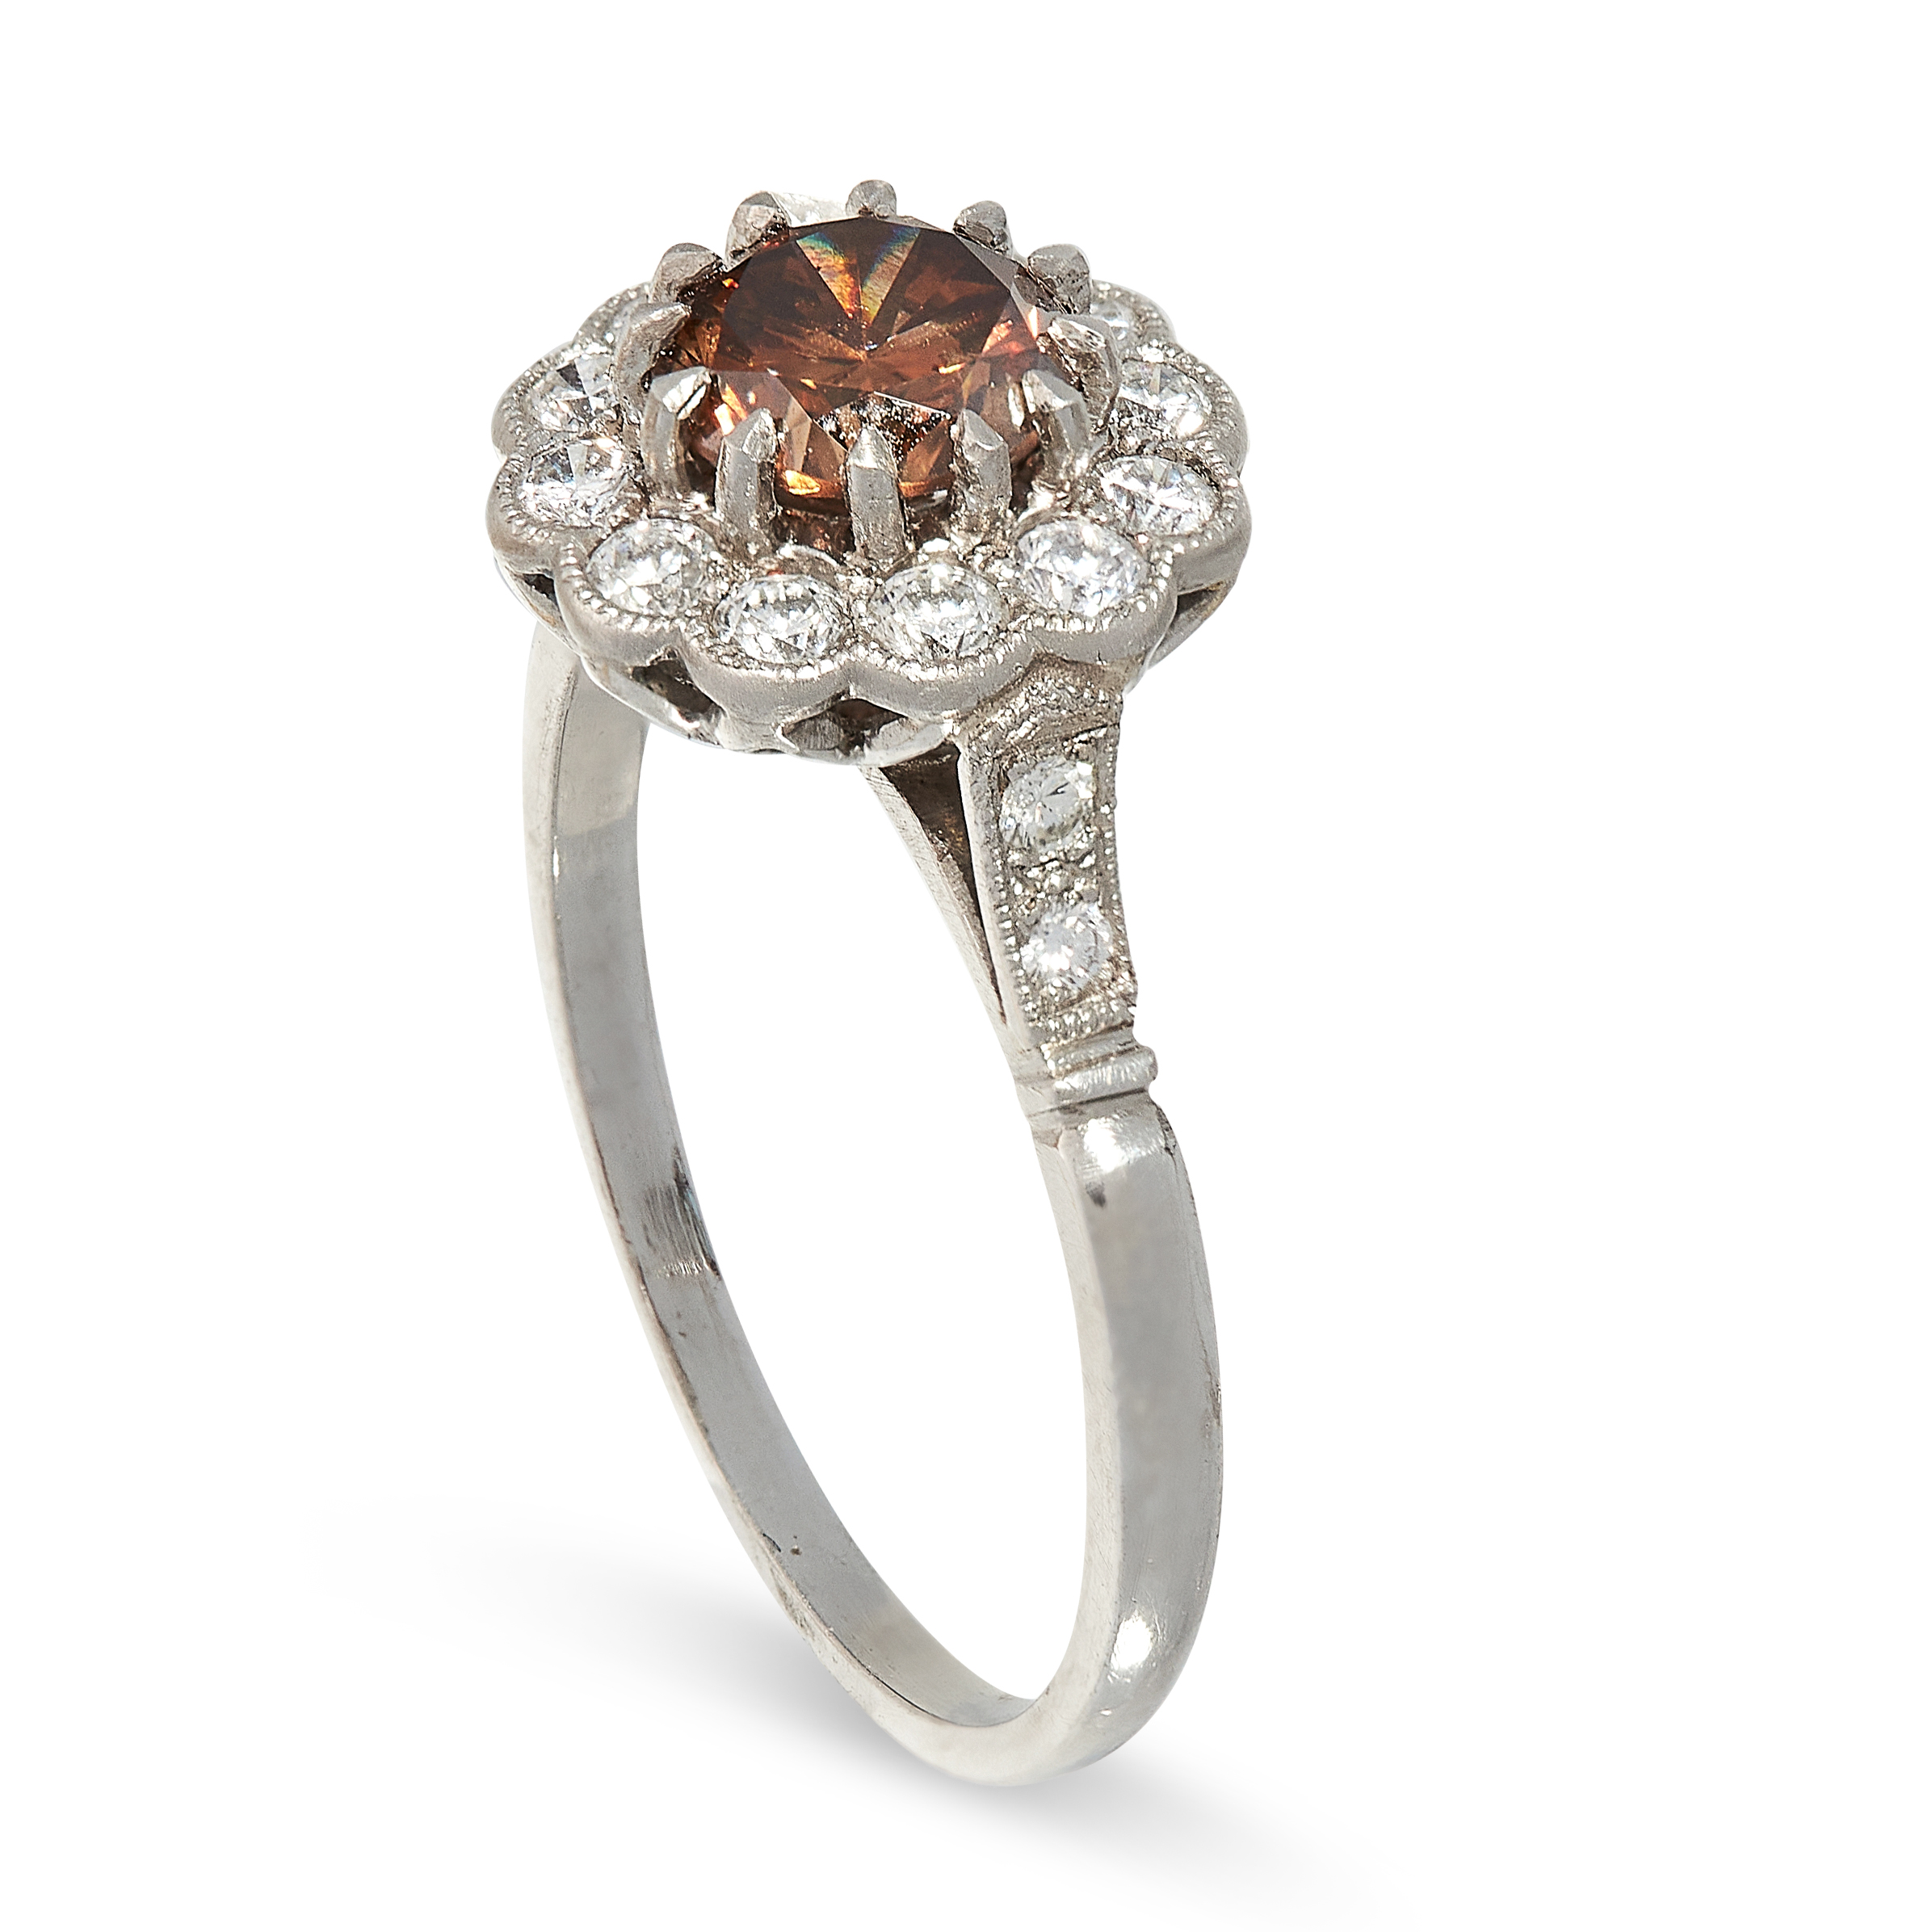 BROWN DIAMOND CLUSTER RING comprising of a round cut brown diamond of 1.00 carats in a border of - Image 2 of 2